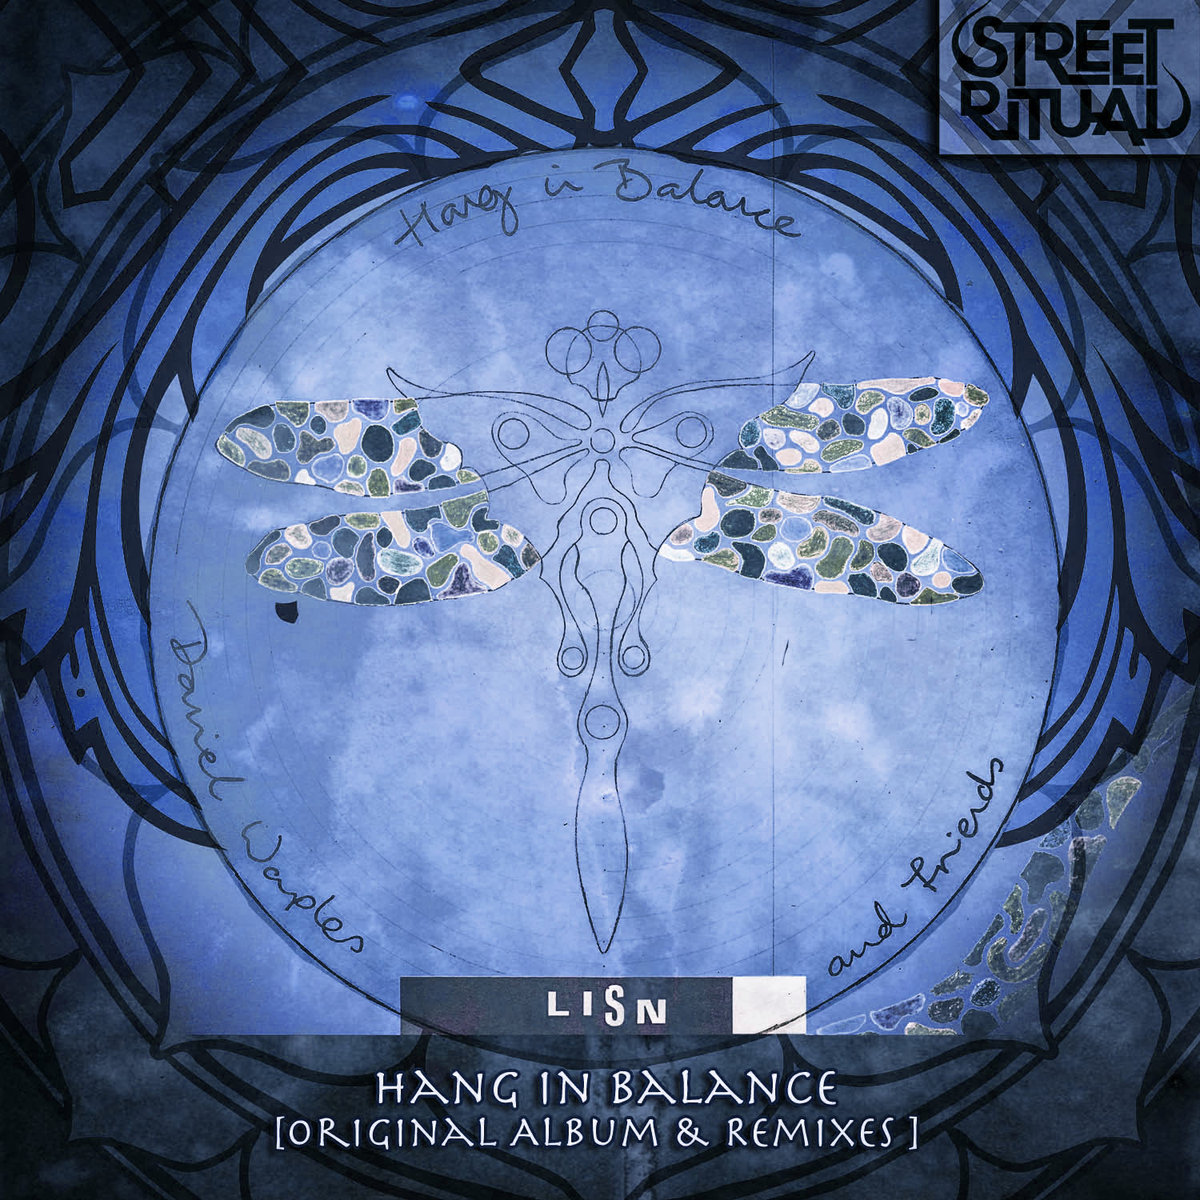 Hang in Balance - Einsof @ 'Lisn (Remixes & Originals)' album (bass, daniel waples)